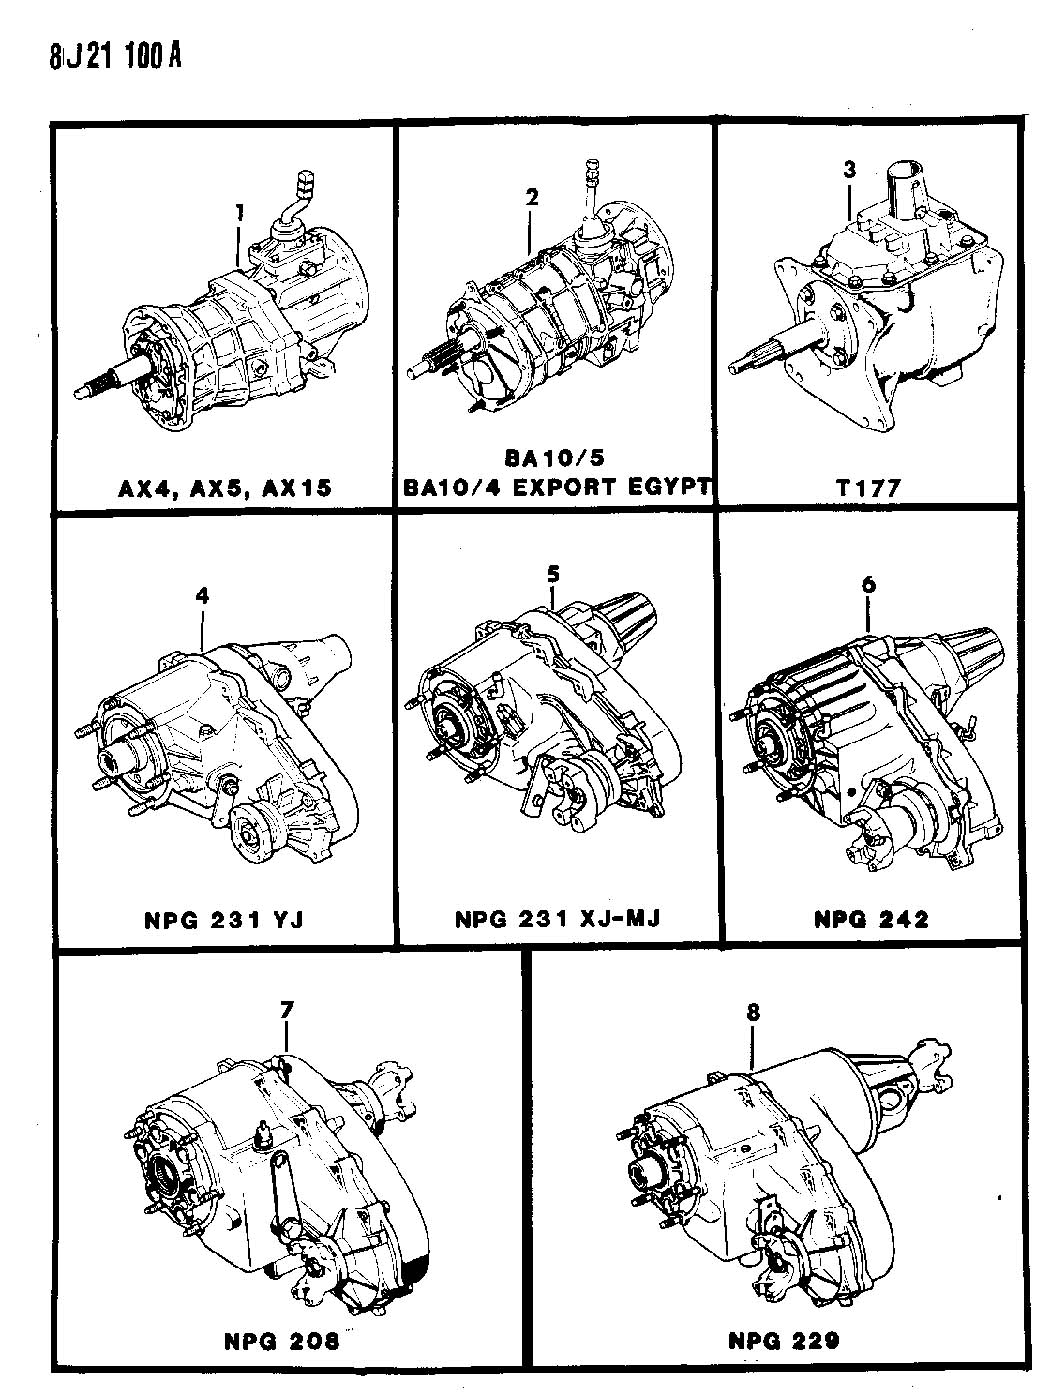 1988 Jeep MANUAL TRANSMISSION AND TRANSFER CASE ASSEMBLIES